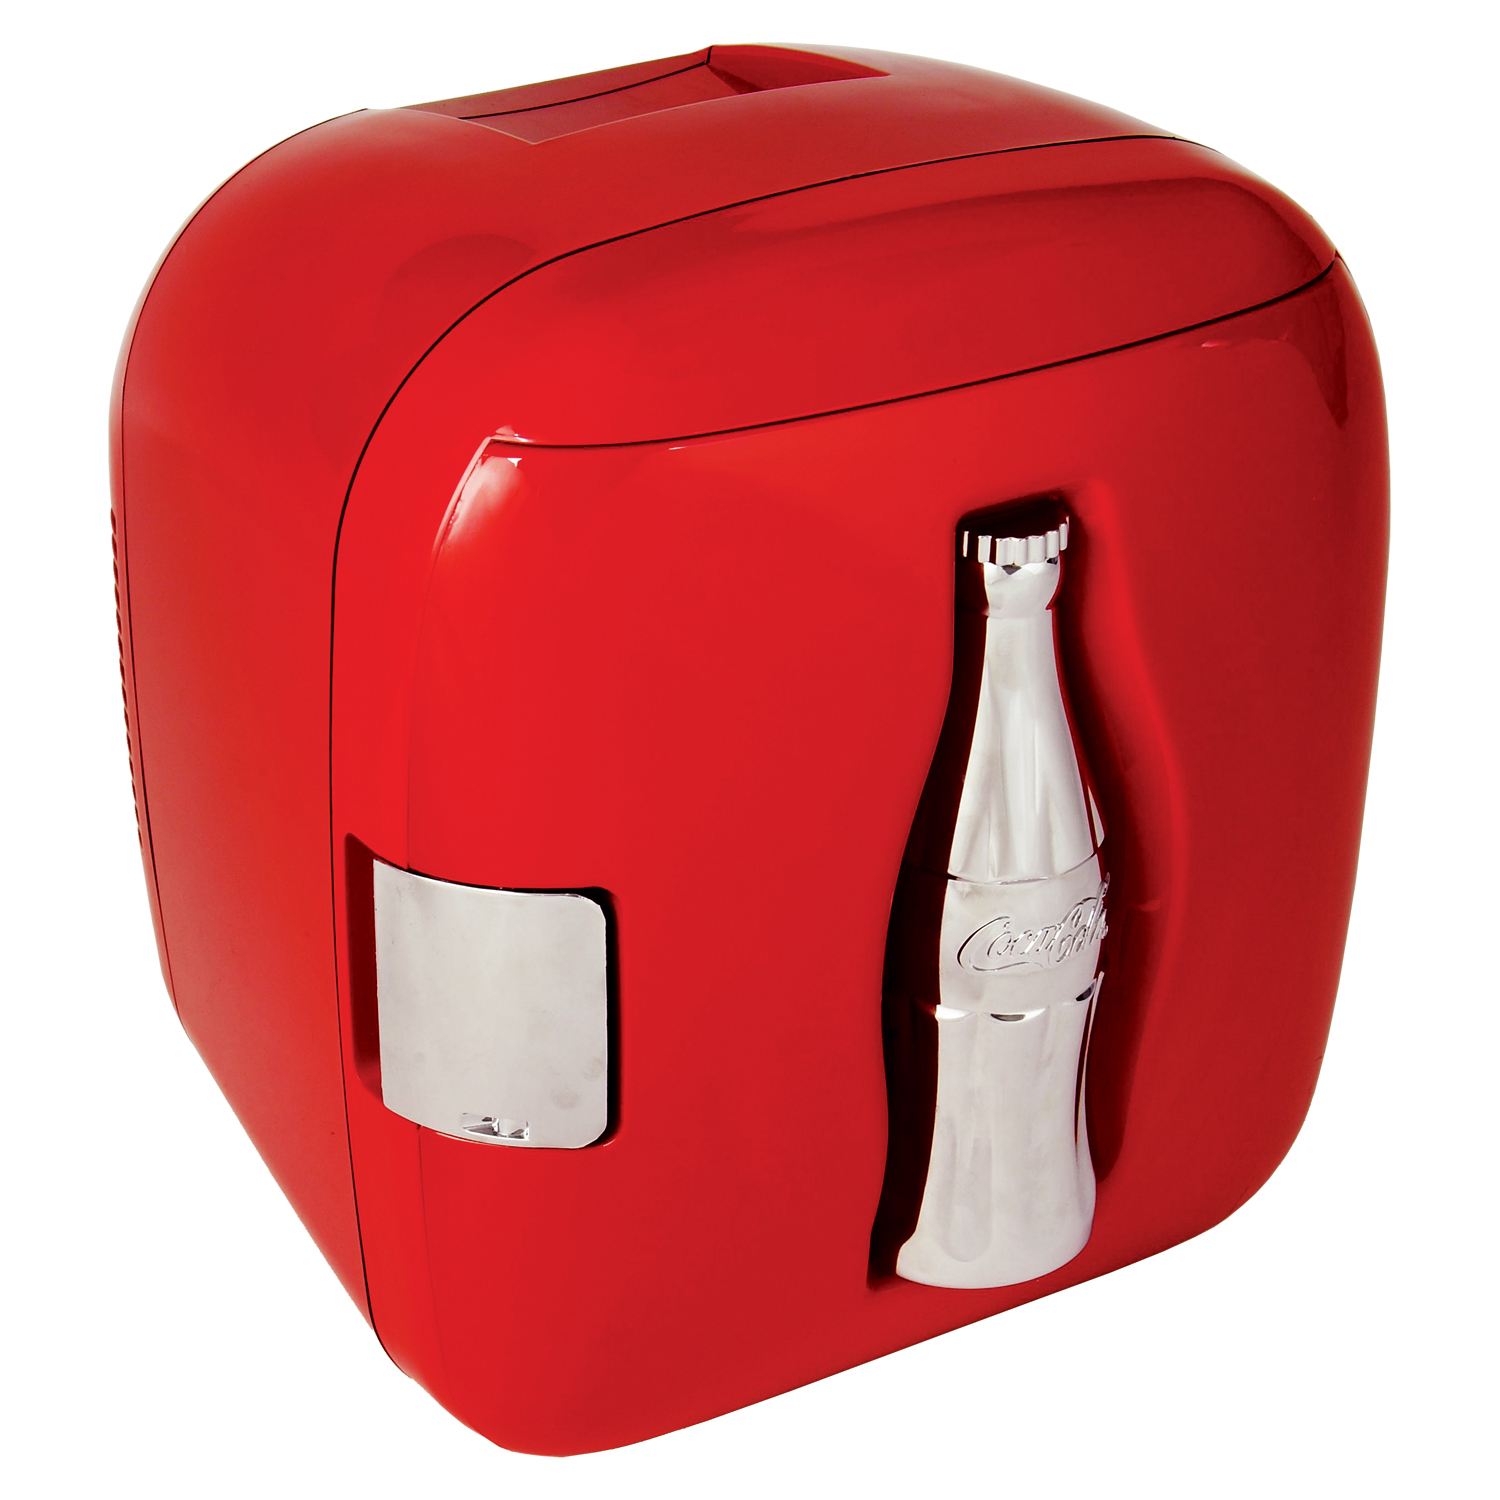 Koolatron Coca-Cola 12 can Compact Electric Cooler 110 V & 12V CCU09, Red Heritage Can Design